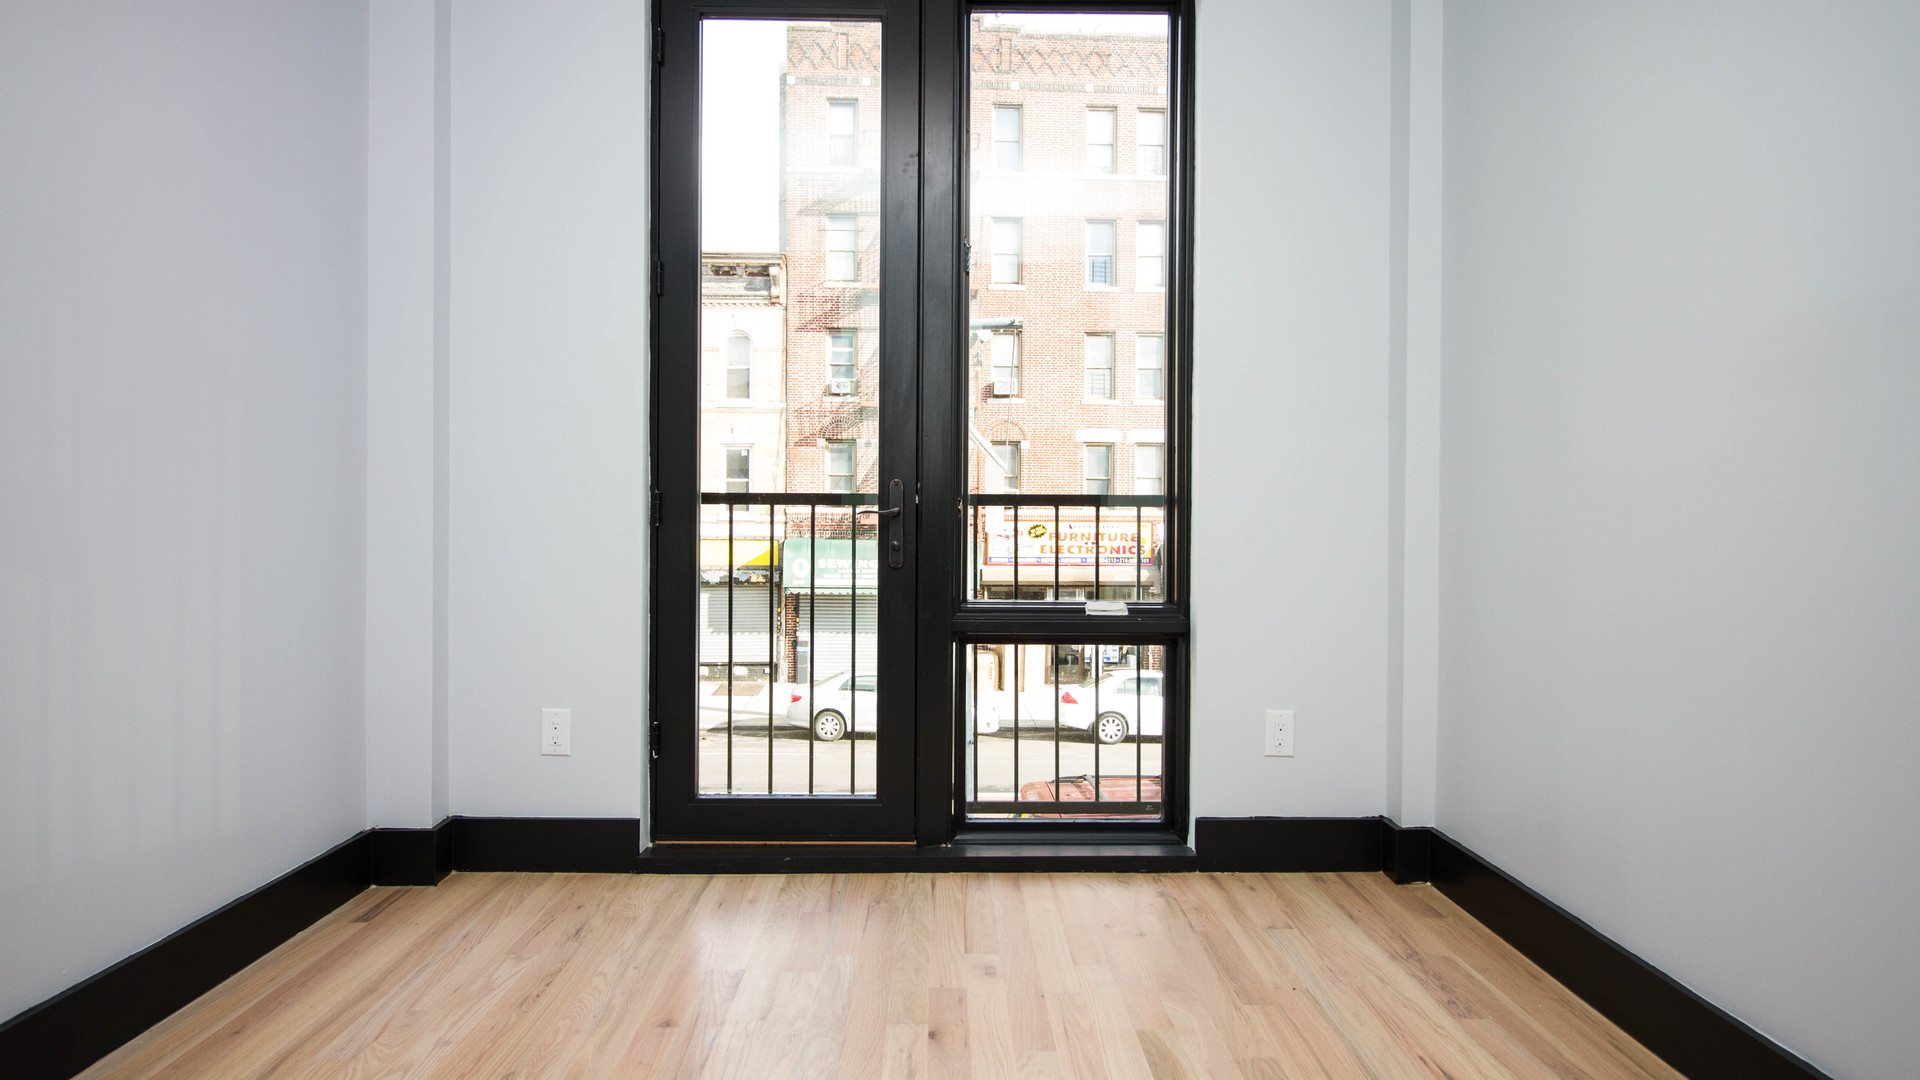 017 1544 nostrand ave 2f %2810 of 21%29